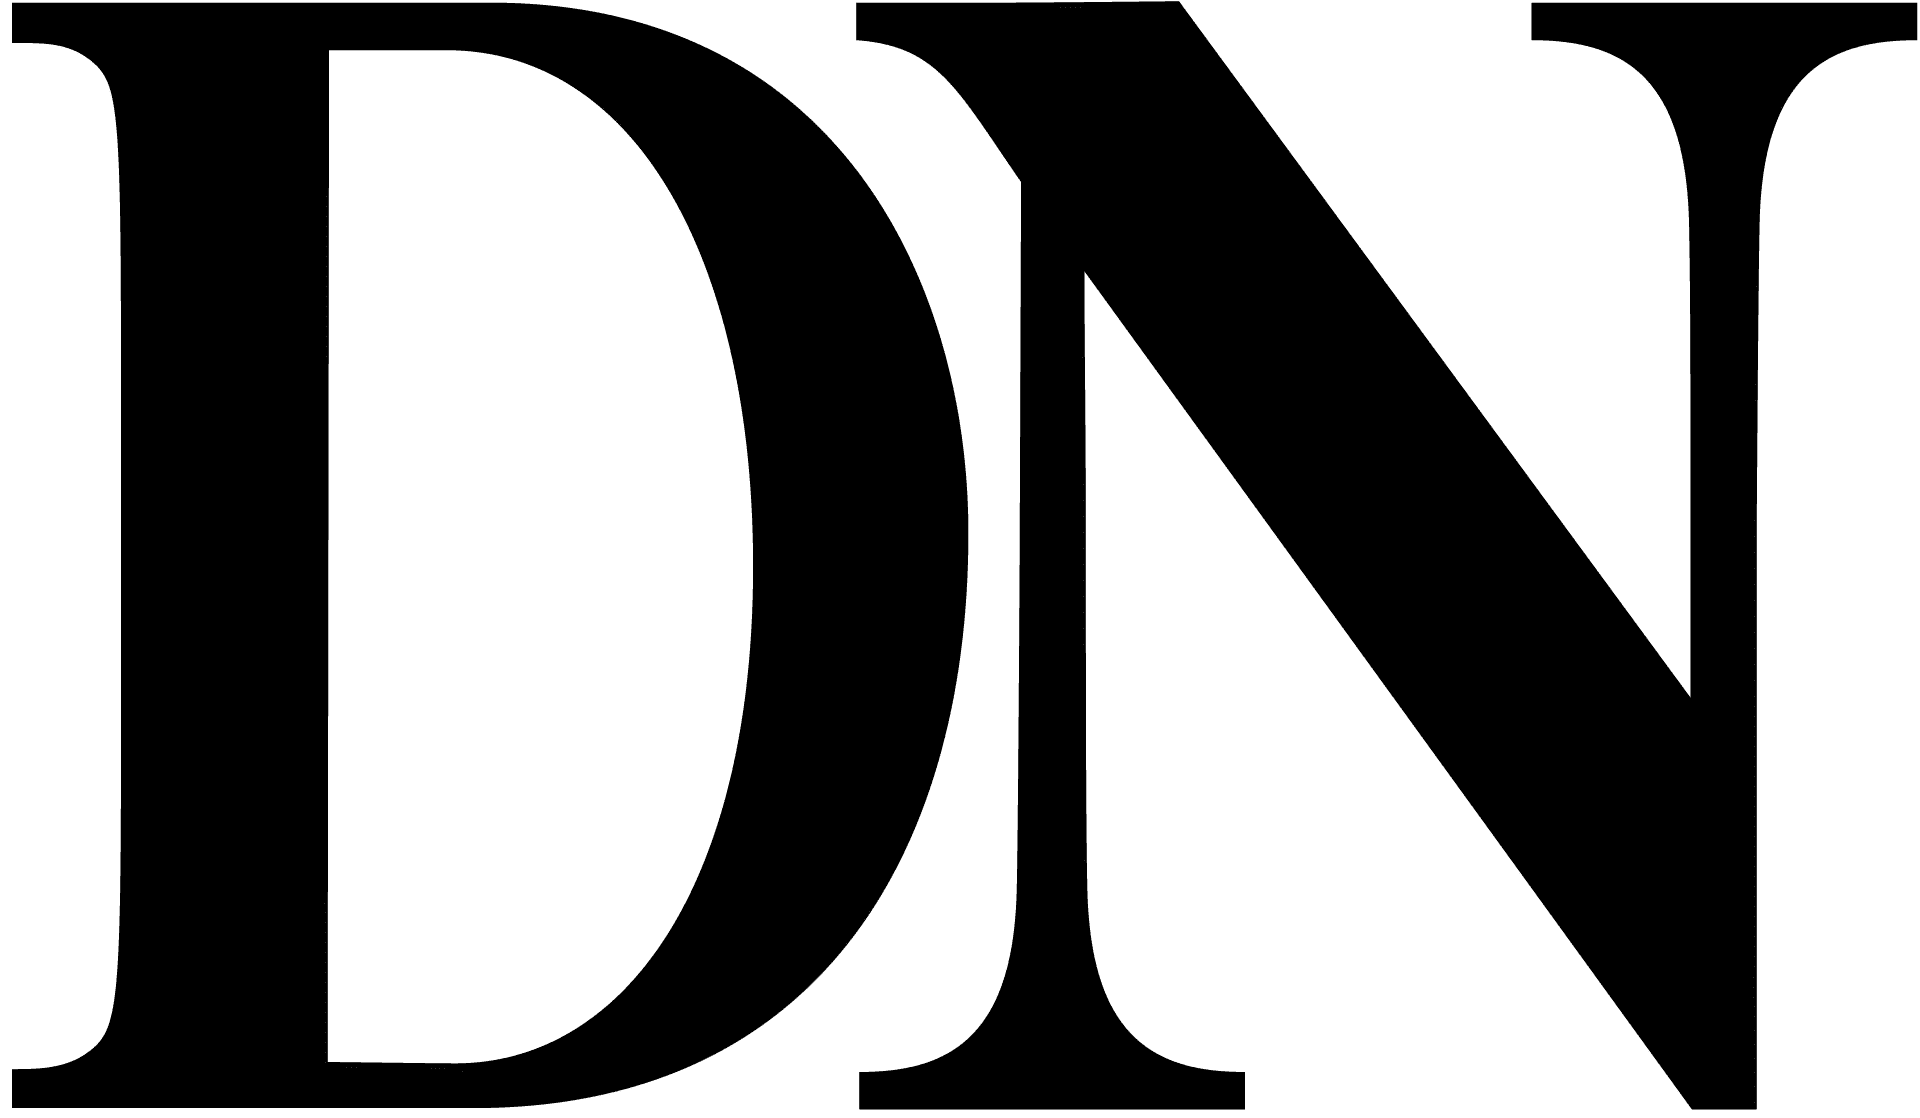 DN_logo_black_dn_only.png